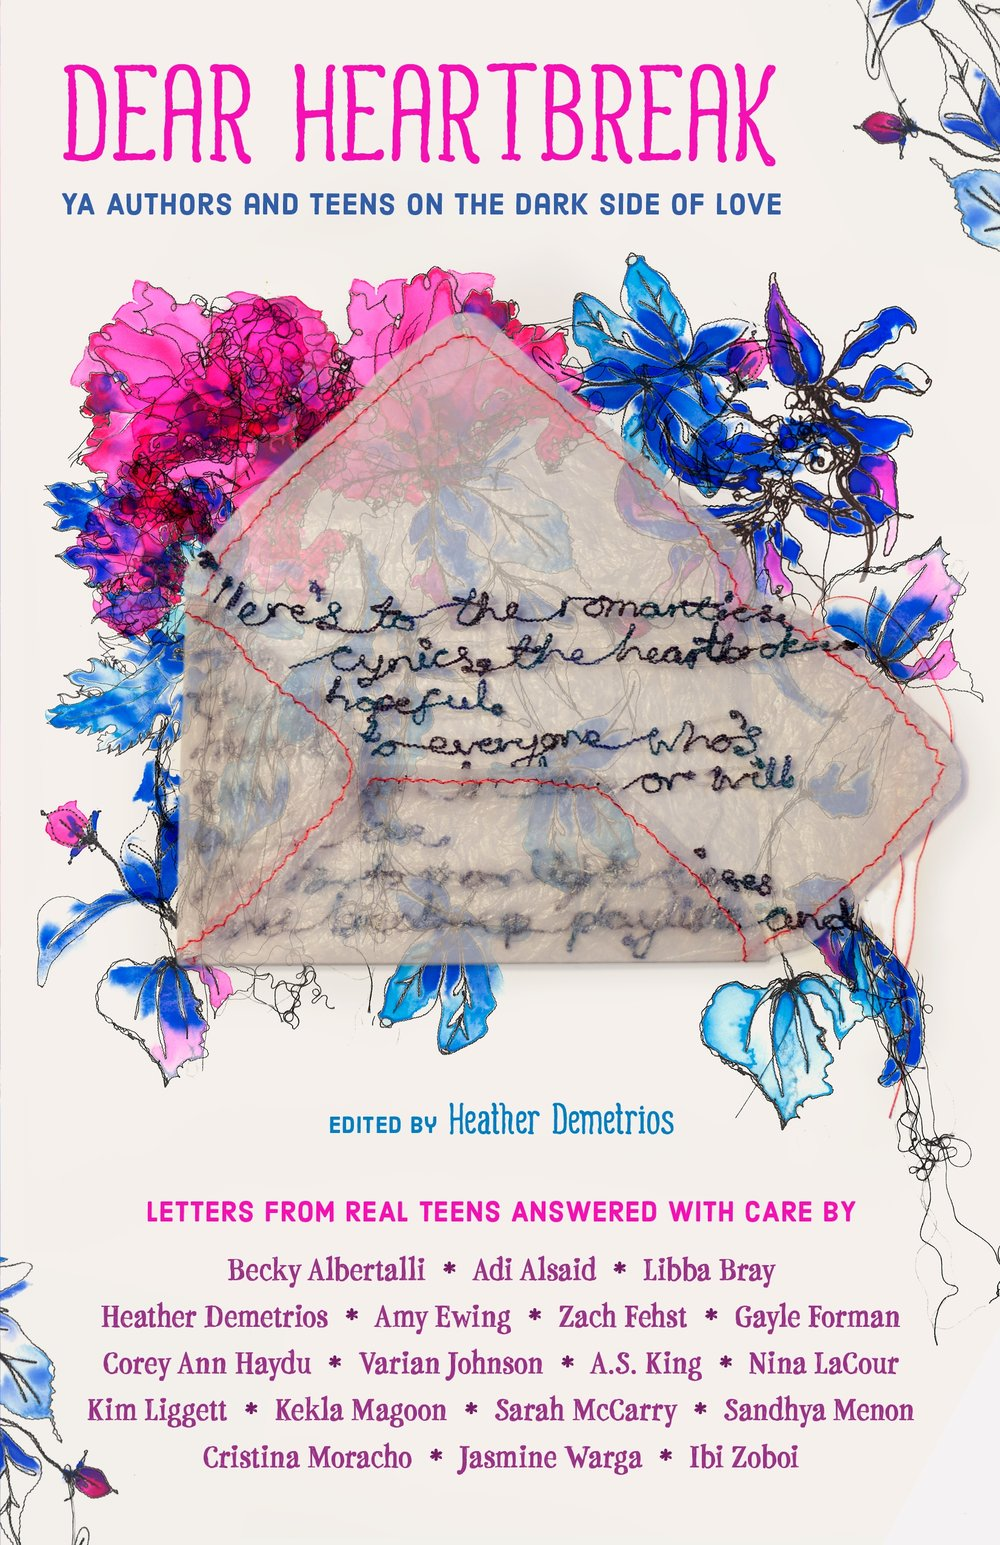 Dear Heartbreak - *Coming 2018 from Macmillan*This is a book about the dark side of love: the way it kicks your ass, tears out your heart, and then forces you to eat it, bite by bloody bite. If you've felt this way, you're not alone…In this powerful collection, YA authors answer real letters from teens all over the world about the dark side of love: dating violence, break-ups, cheating, betrayals, and loneliness. This book contains a no-holds-barred, raw outpouring of the wisdom these authors have culled from mining their own hearts for the fiction they write. Their responses are autobiographical, unflinching, and filled with love and hope for the anonymous teen letter writers.Featuring Adi Alsaid, Becky Albertalli, Libba Bray, Heather Demetrios, Amy Ewing, Zach Fehst, Gayle Forman, Corey Ann Haydu, Varian Johnson, A.S. King, Nina LaCour, Kim Liggett, Kekla Magoon, Sarah McCarry, Sandhya Menon, Cristina Moracho, Jasmine Warga, and Ibi Zoboi.